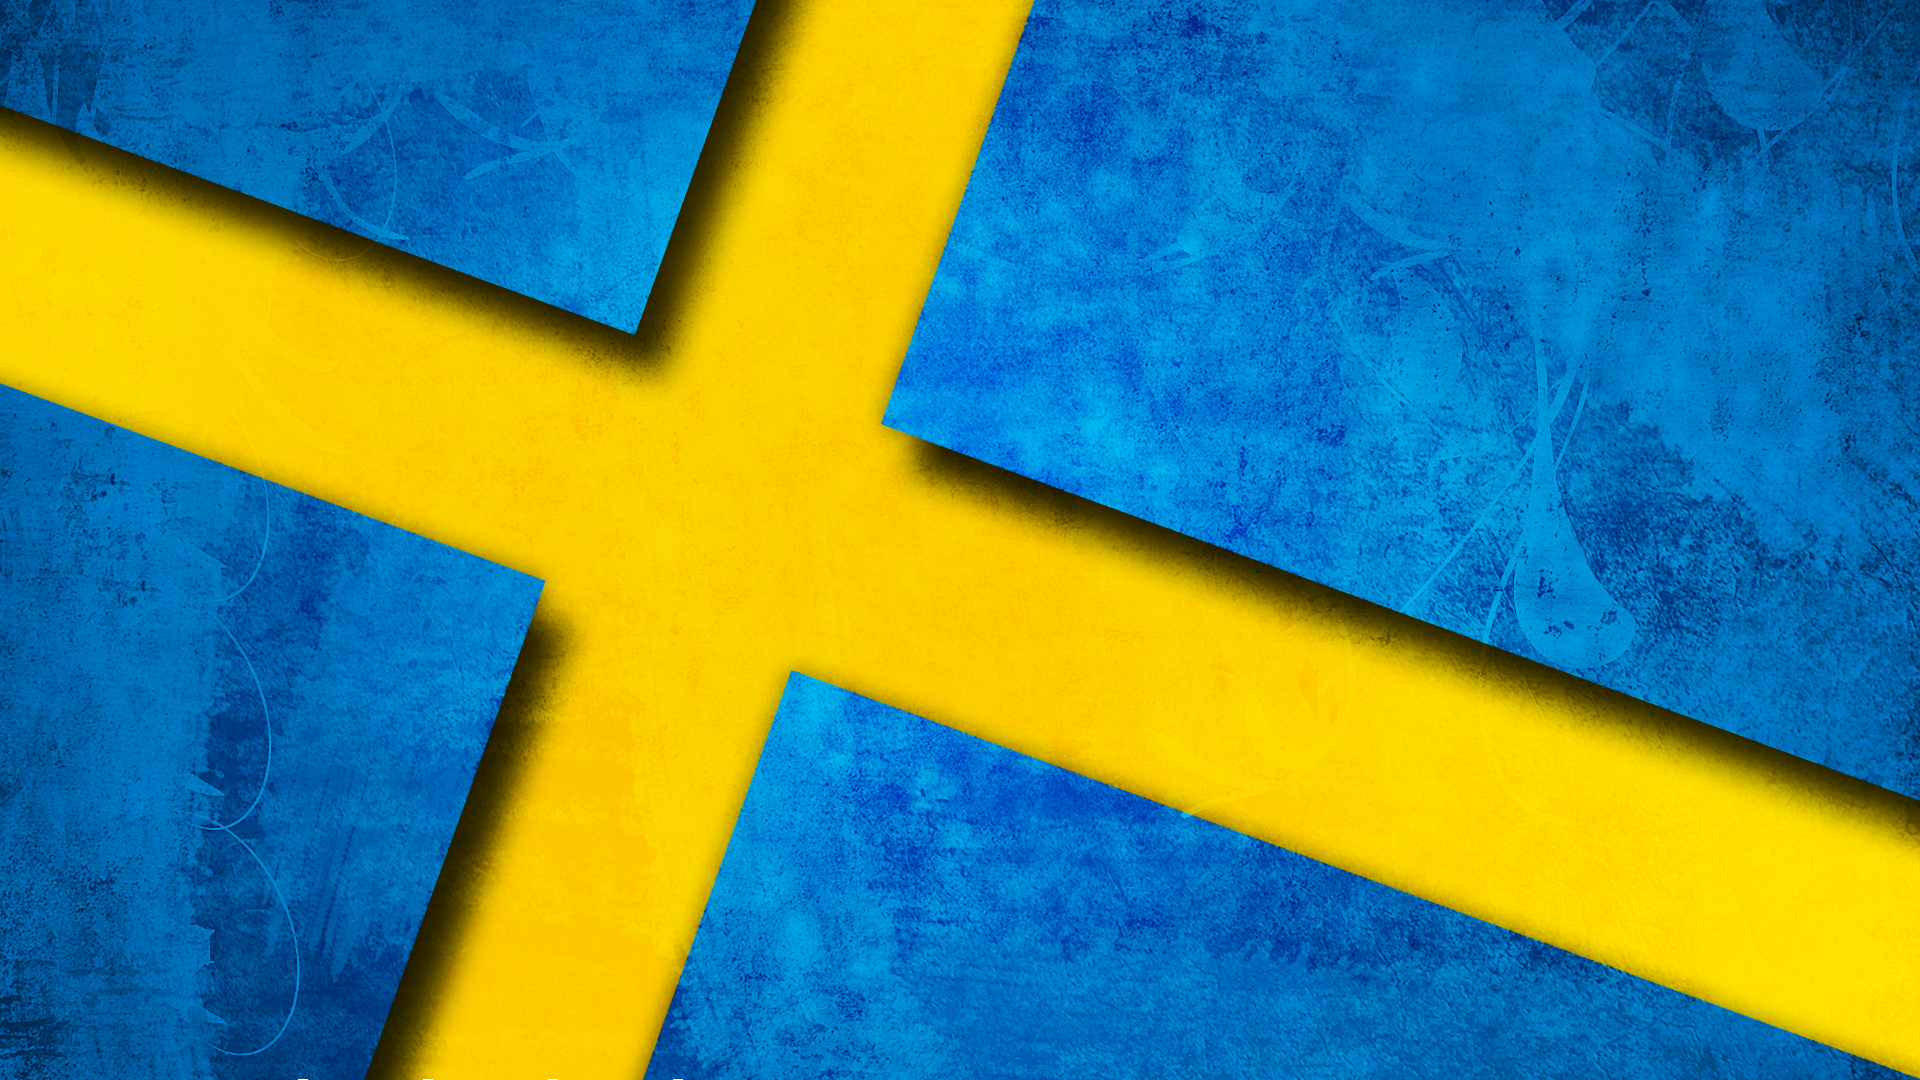 Swedish Flag Background by Luckmann 1920x1080